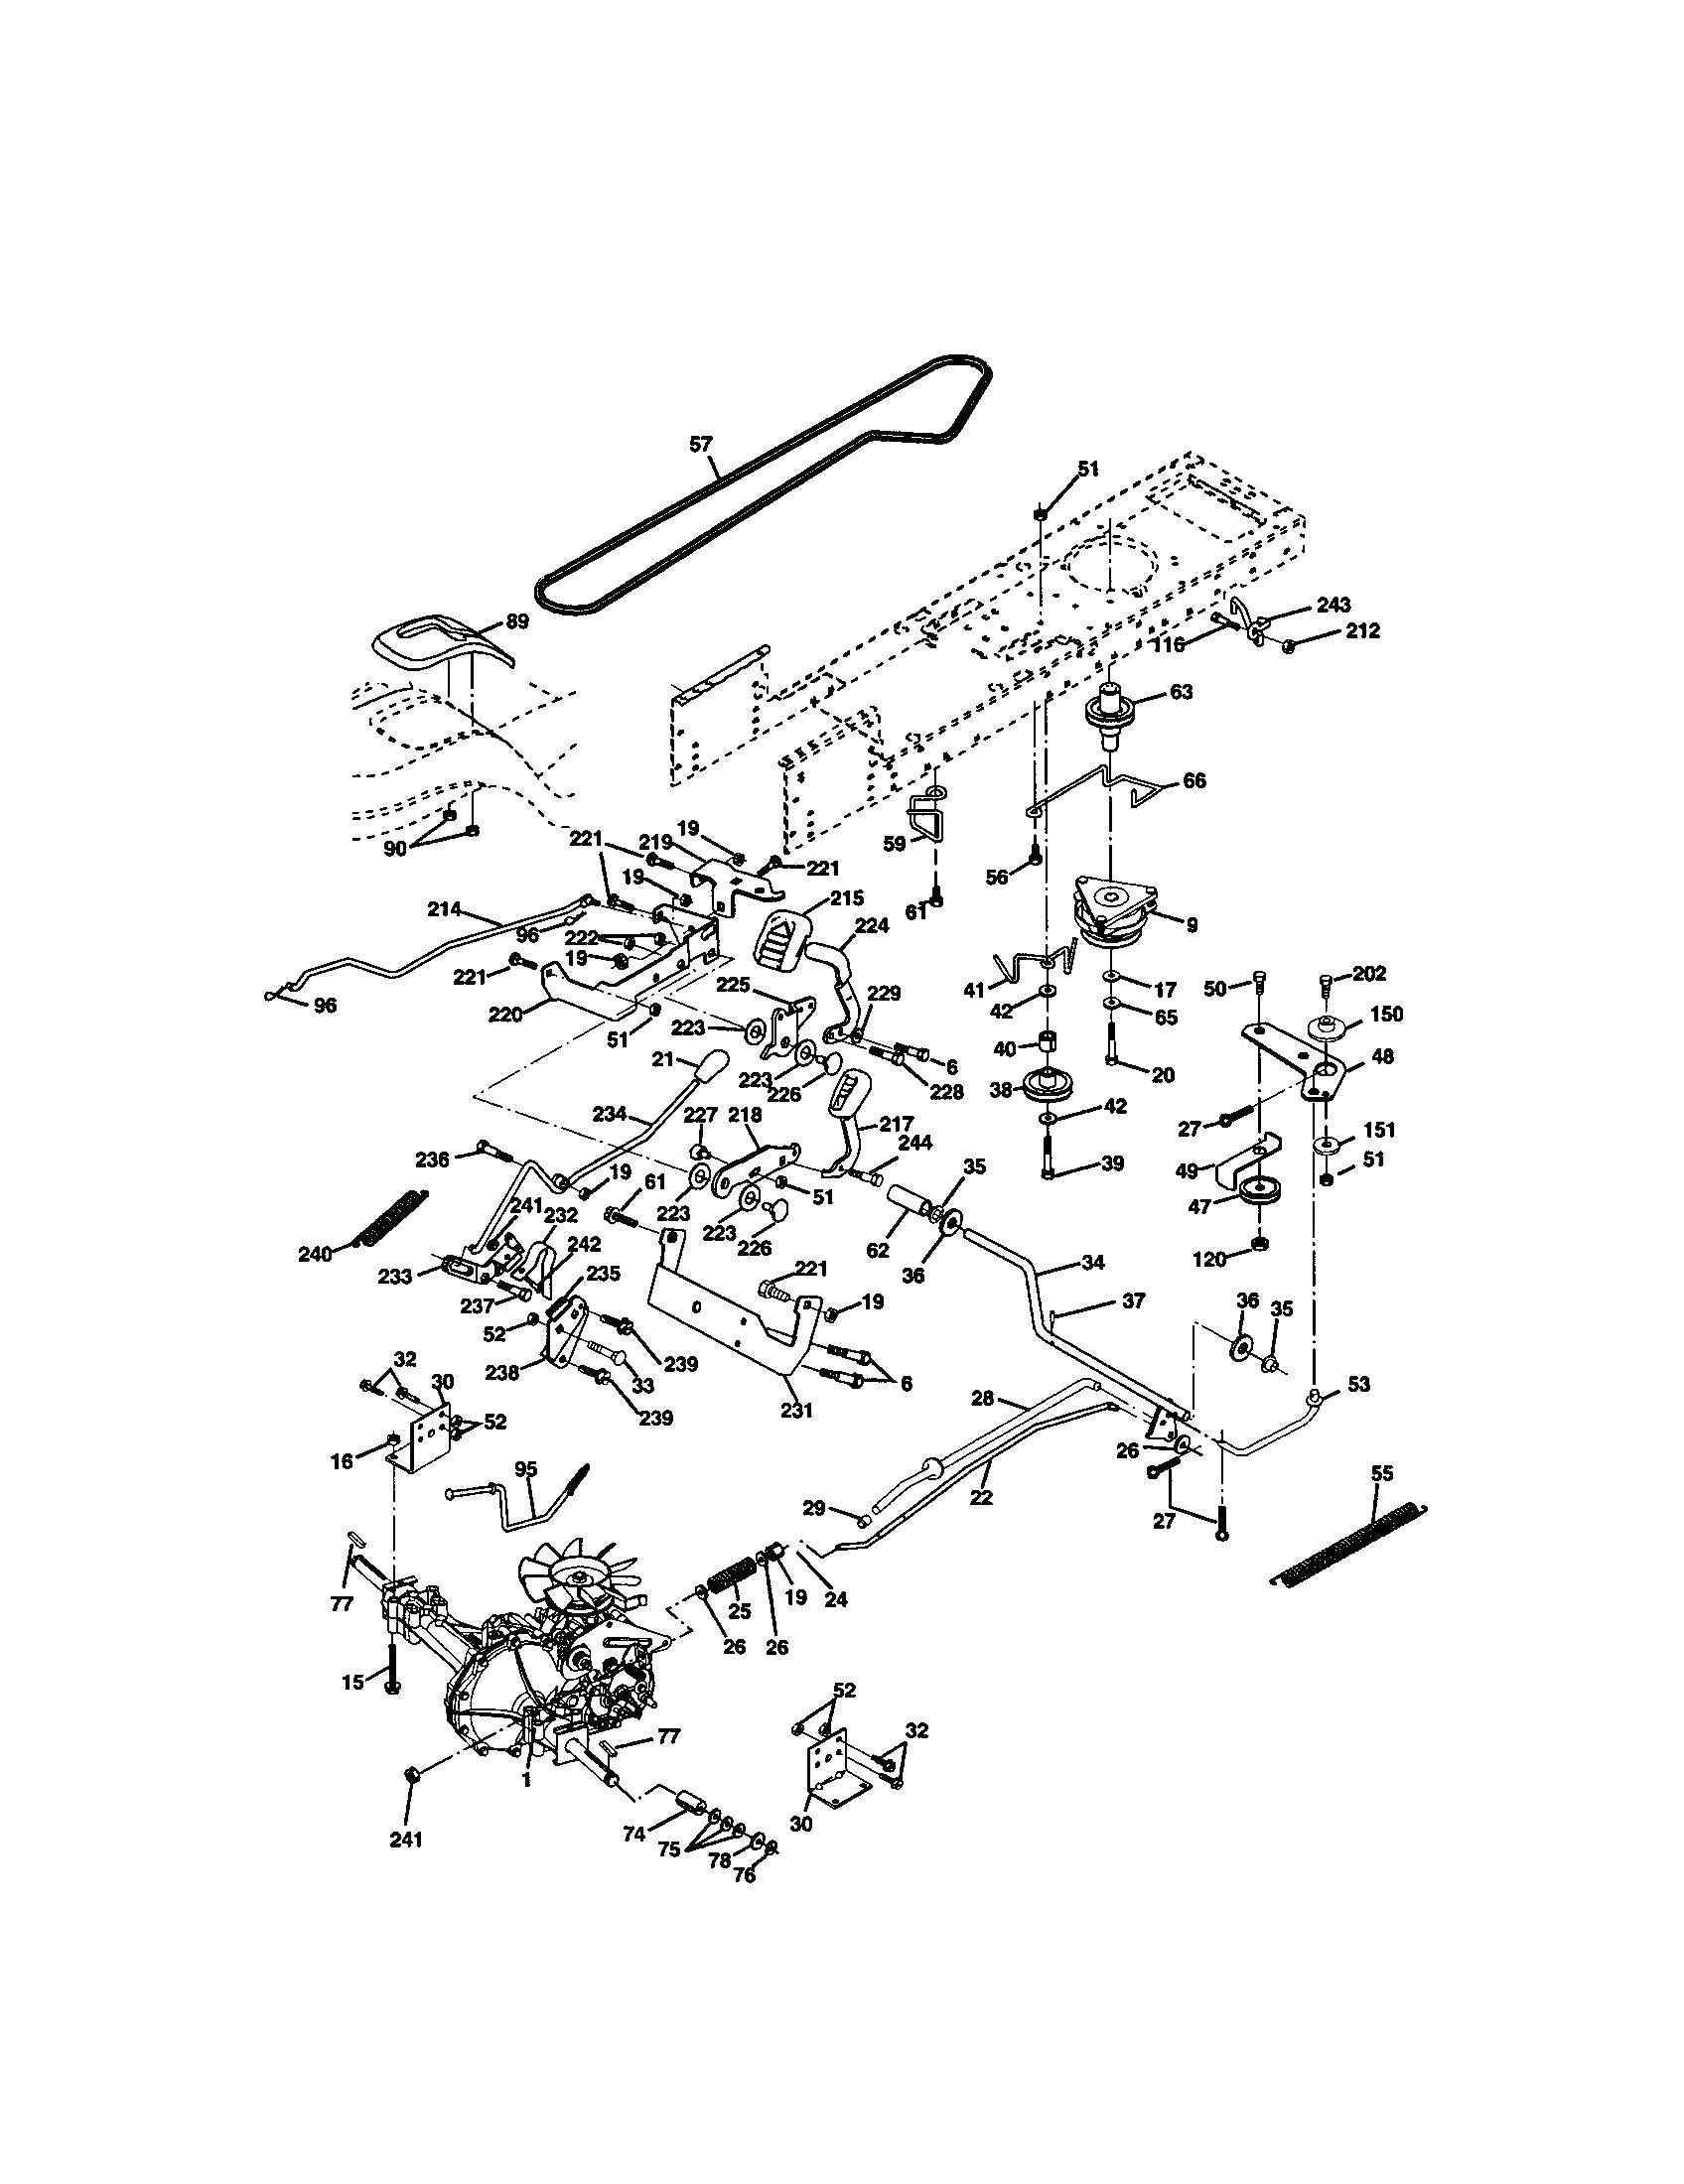 Craftsman Riding Lawn Mower Parts Diagram 917 Craftsman 20 0 Hp Electric Start 48 In Mower Automatic Of Craftsman Riding Lawn Mower Parts Diagram